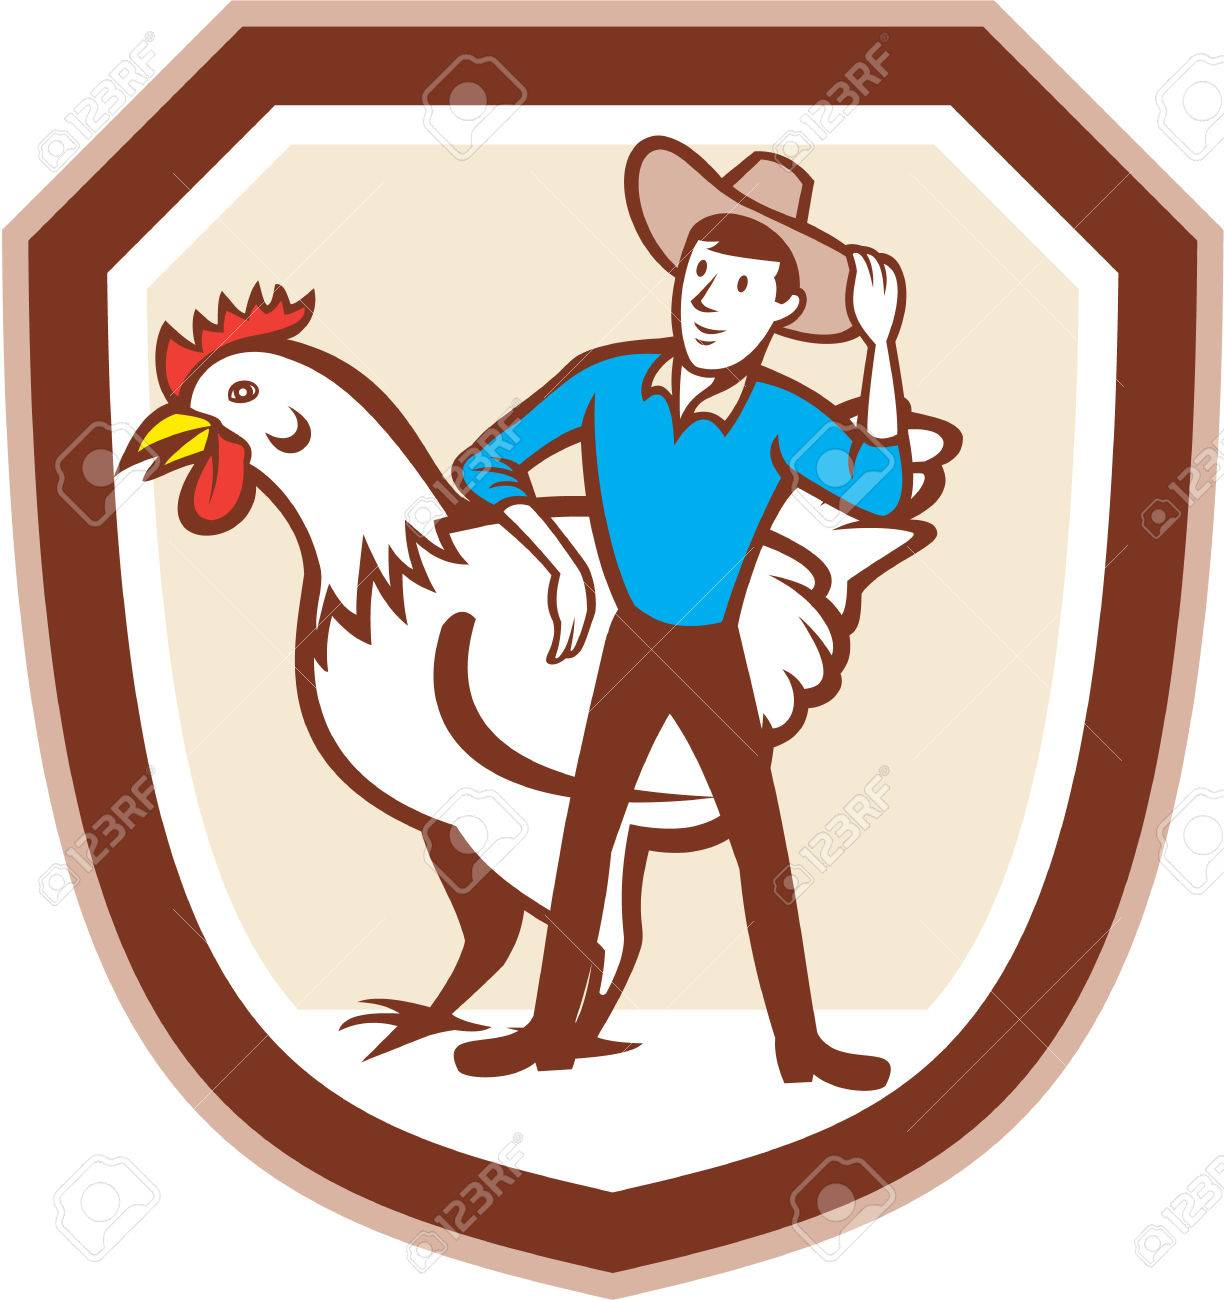 Illustration of a hen chicken fowl and male farmer set inside shield crest done in cartoon style. - 28797063